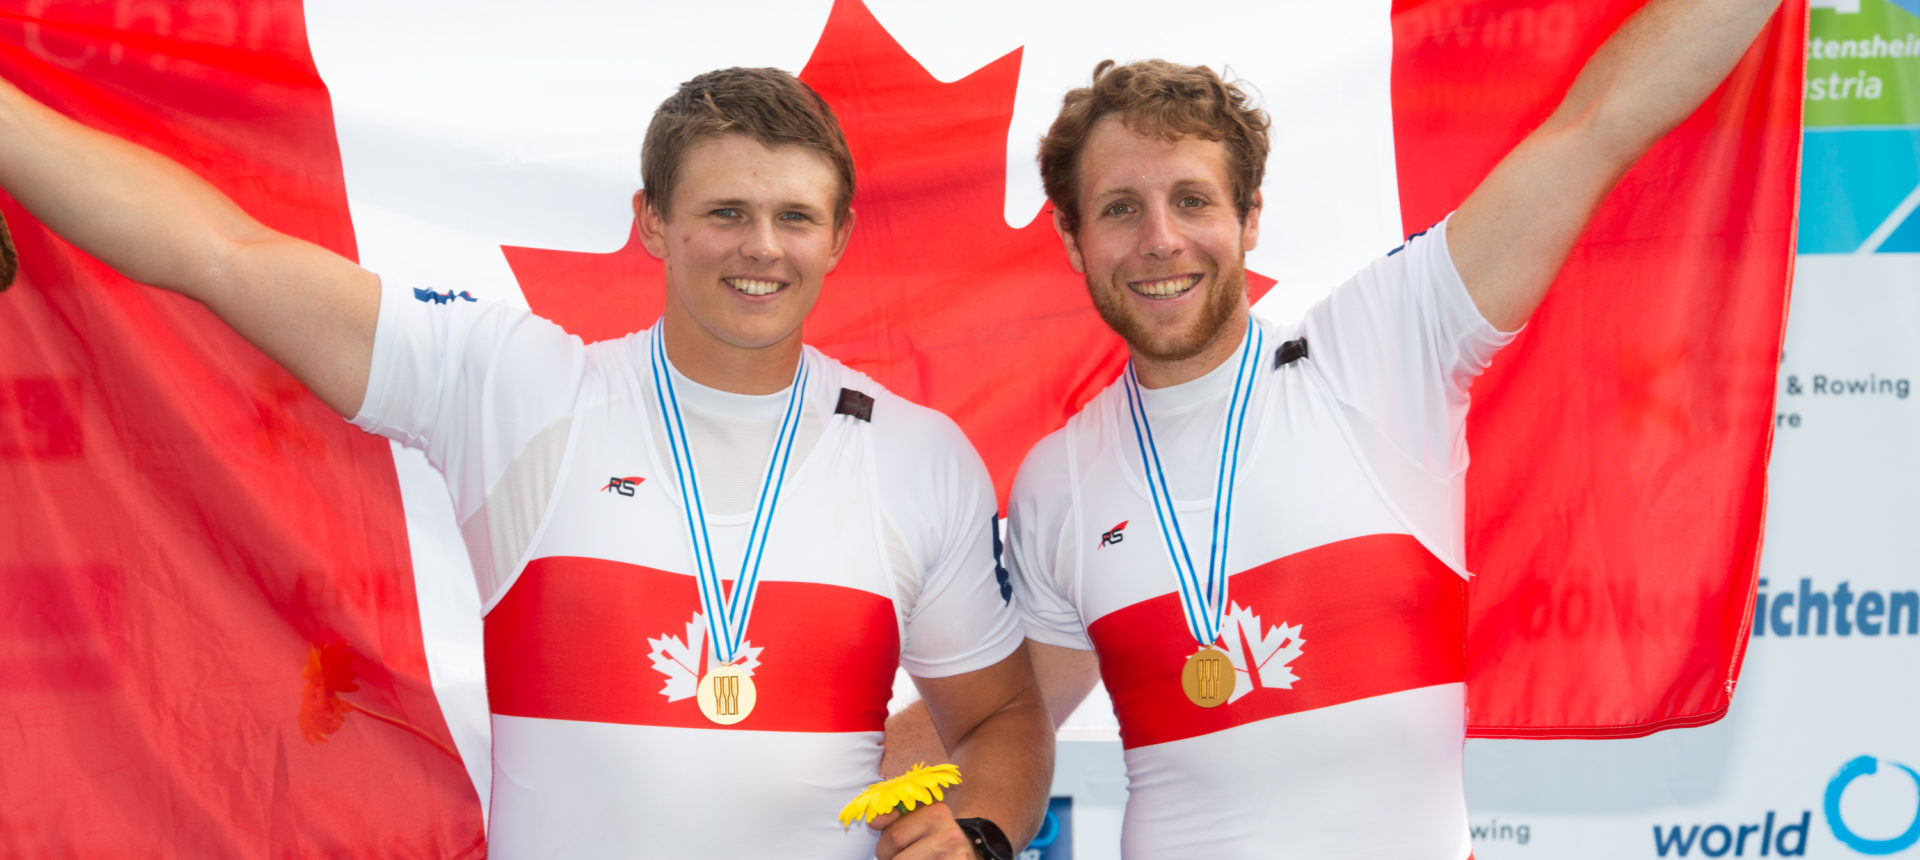 Defending World Champions and 2020 Olympic Qualifications for Canada